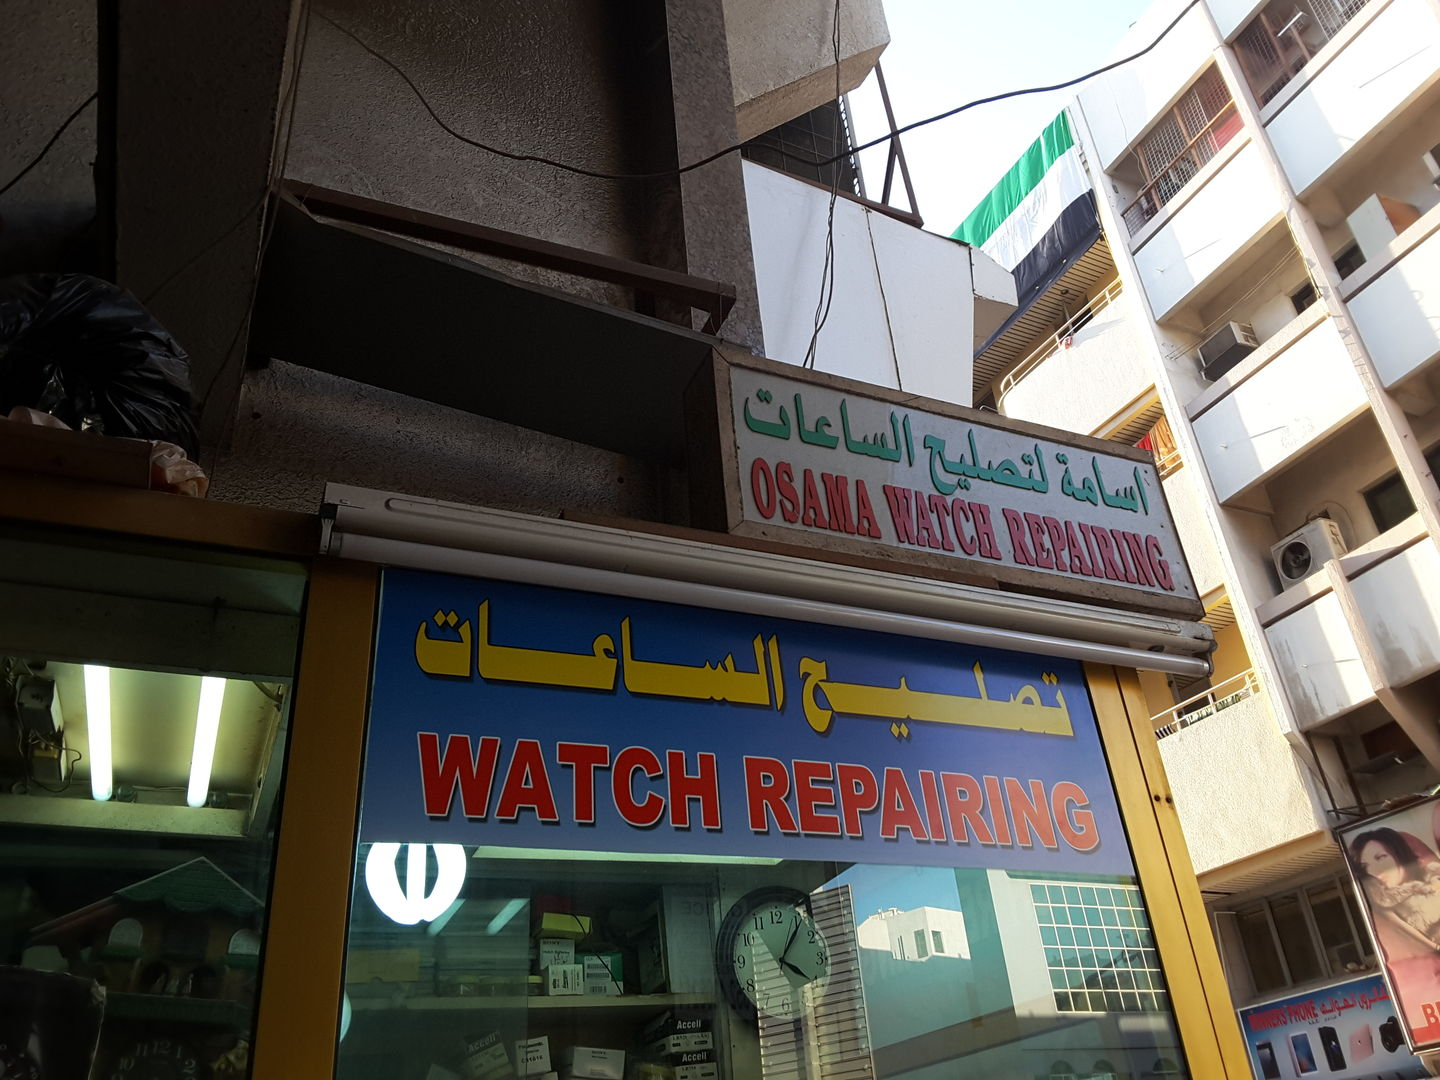 HiDubai-business-osama-watch-repairing-shopping-watches-eyewear-baniyas-square-dubai-2